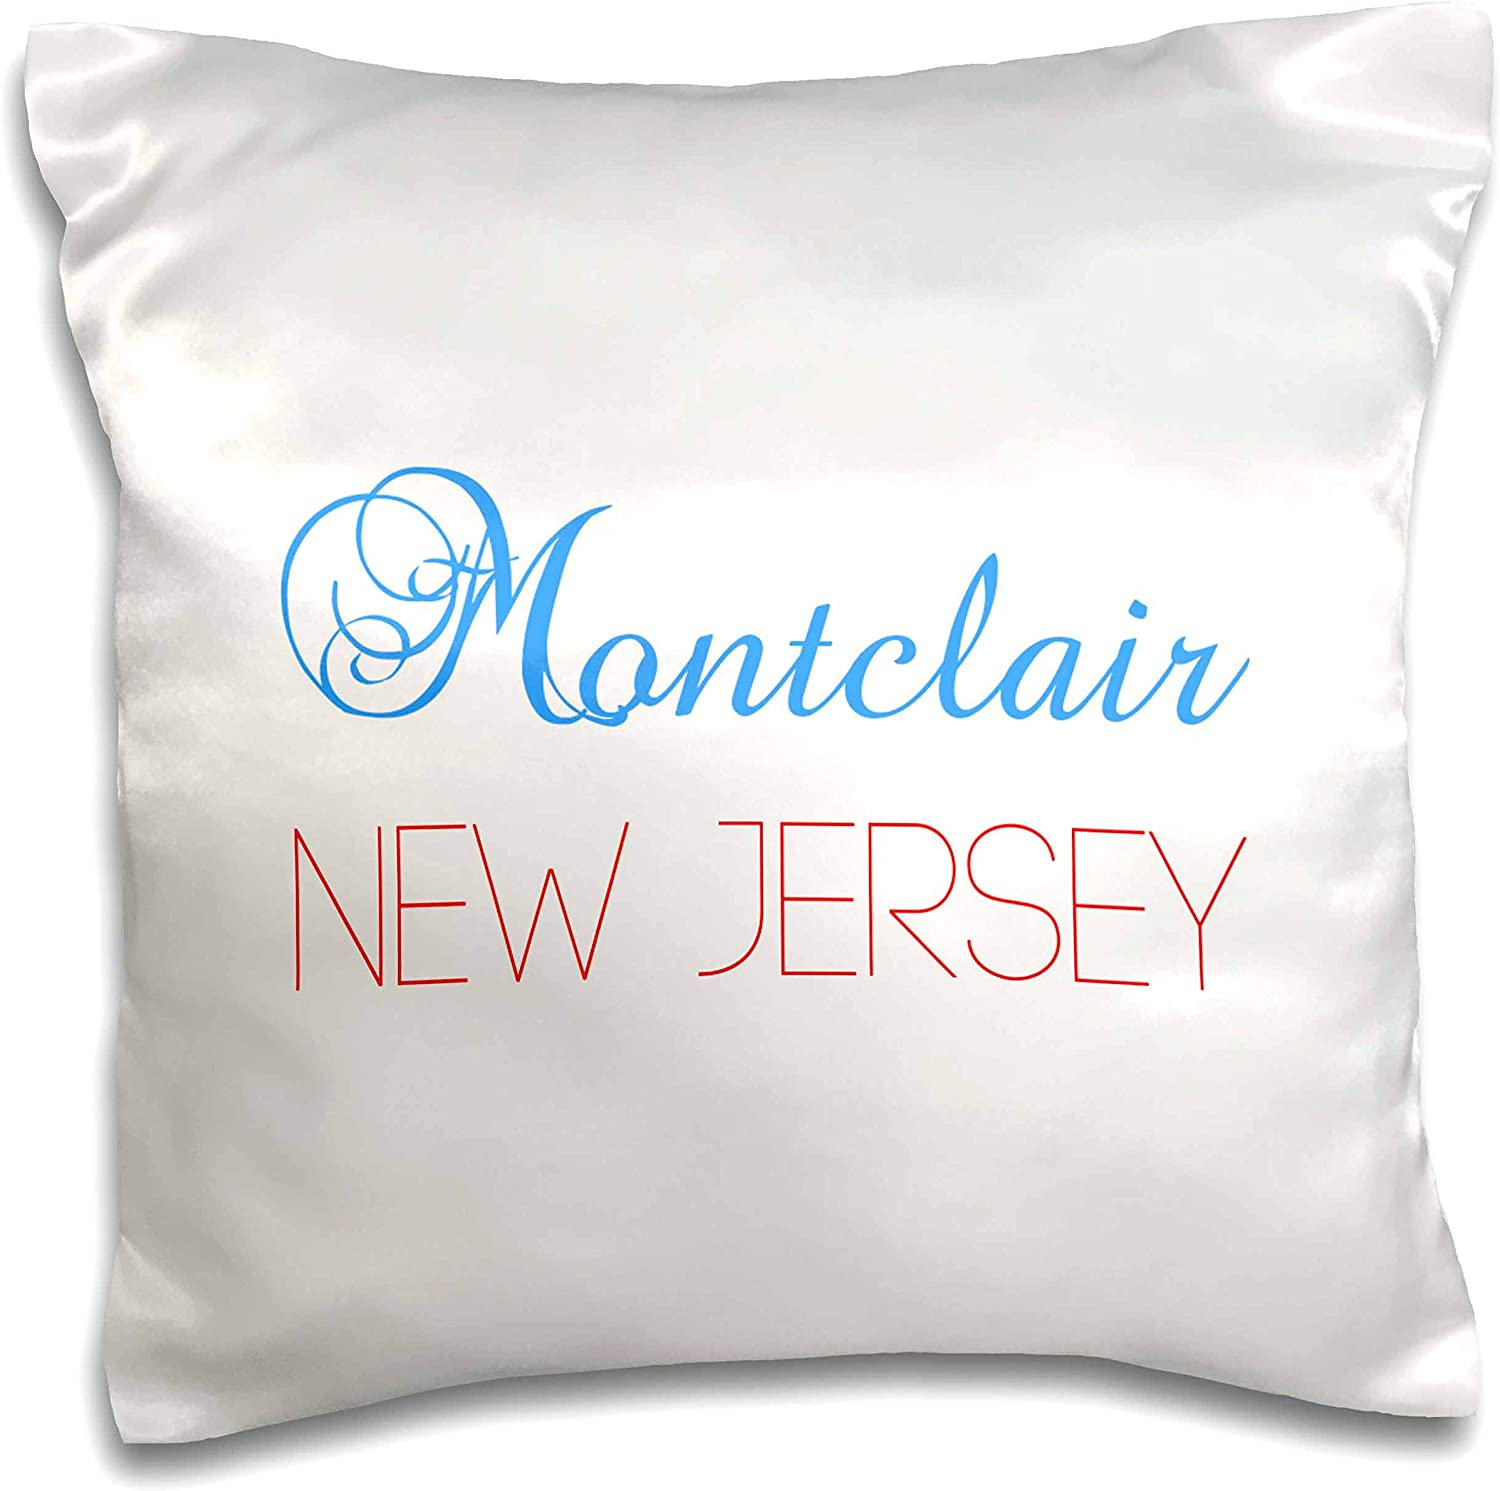 3dRose Alexis Design - American Cities New Jersey - Montclair, New Jersey, red, blue text. Patriotic home town design - 16x16 inch Pillow Case (pc_300866_1)